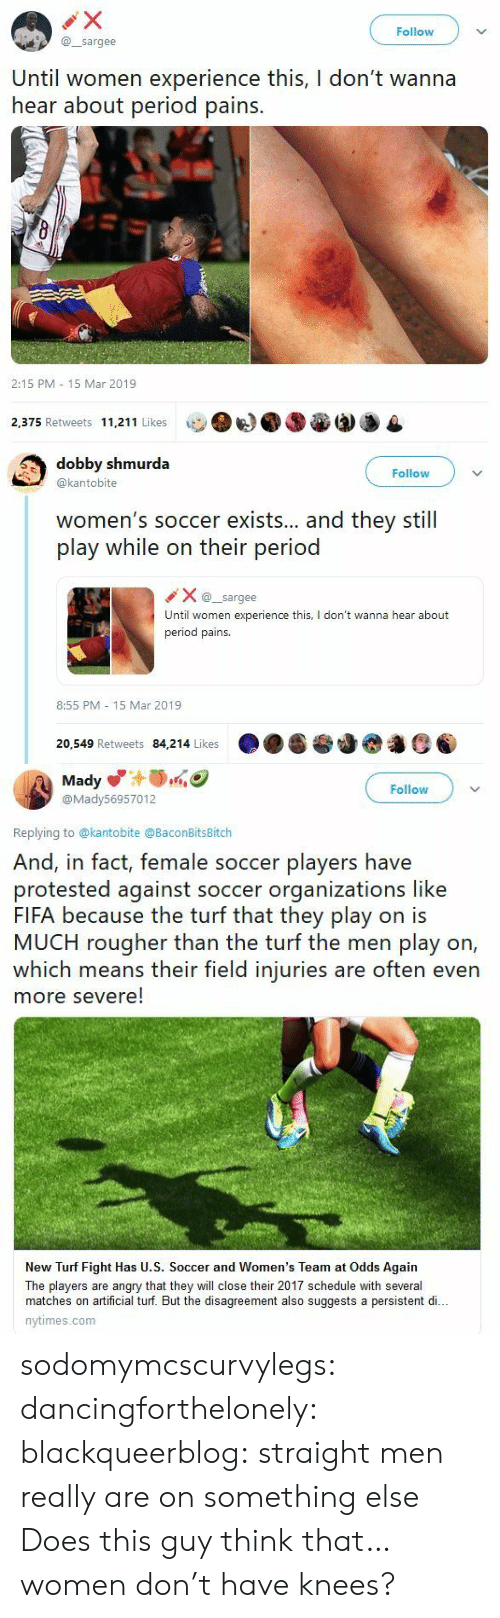 Fifa, Period, and Soccer: Follow  @sargee  Until women experience this, I don't wanna  hear about period pains.  2:15 PM 15 Mar 2019  2,375 Retweets 11,211 Likes   dobby shmurda  @kantobite  Follow  women's soccer exists... and they still  play while on their period  Xsargee  Until women experience this, I don't wanna hear about  period pains.  8:55 PM 15 Mar 2019  20,549 Retweets 84,214 Likes   Mady  @Mady56957012  Follow  Replying to @kantobite @BaconBitsBitch  And, in fact, female soccer players have  protested against soccer organizations like  FIFA because the turf that they play on is  MUCH rougher than the turf the men play on,  which means their field injuries are often even  more severe!  New Turf Fight Has U.S. Soccer and Women's Team at Odds Again  The players are angry that they will close their 2017 schedule with several  matches on artificial turf. But the disagreement also suggests a persistent di..  nytimes.com sodomymcscurvylegs:  dancingforthelonely:  blackqueerblog:   straight men really are on something else    Does this guy think that…women don't have knees?